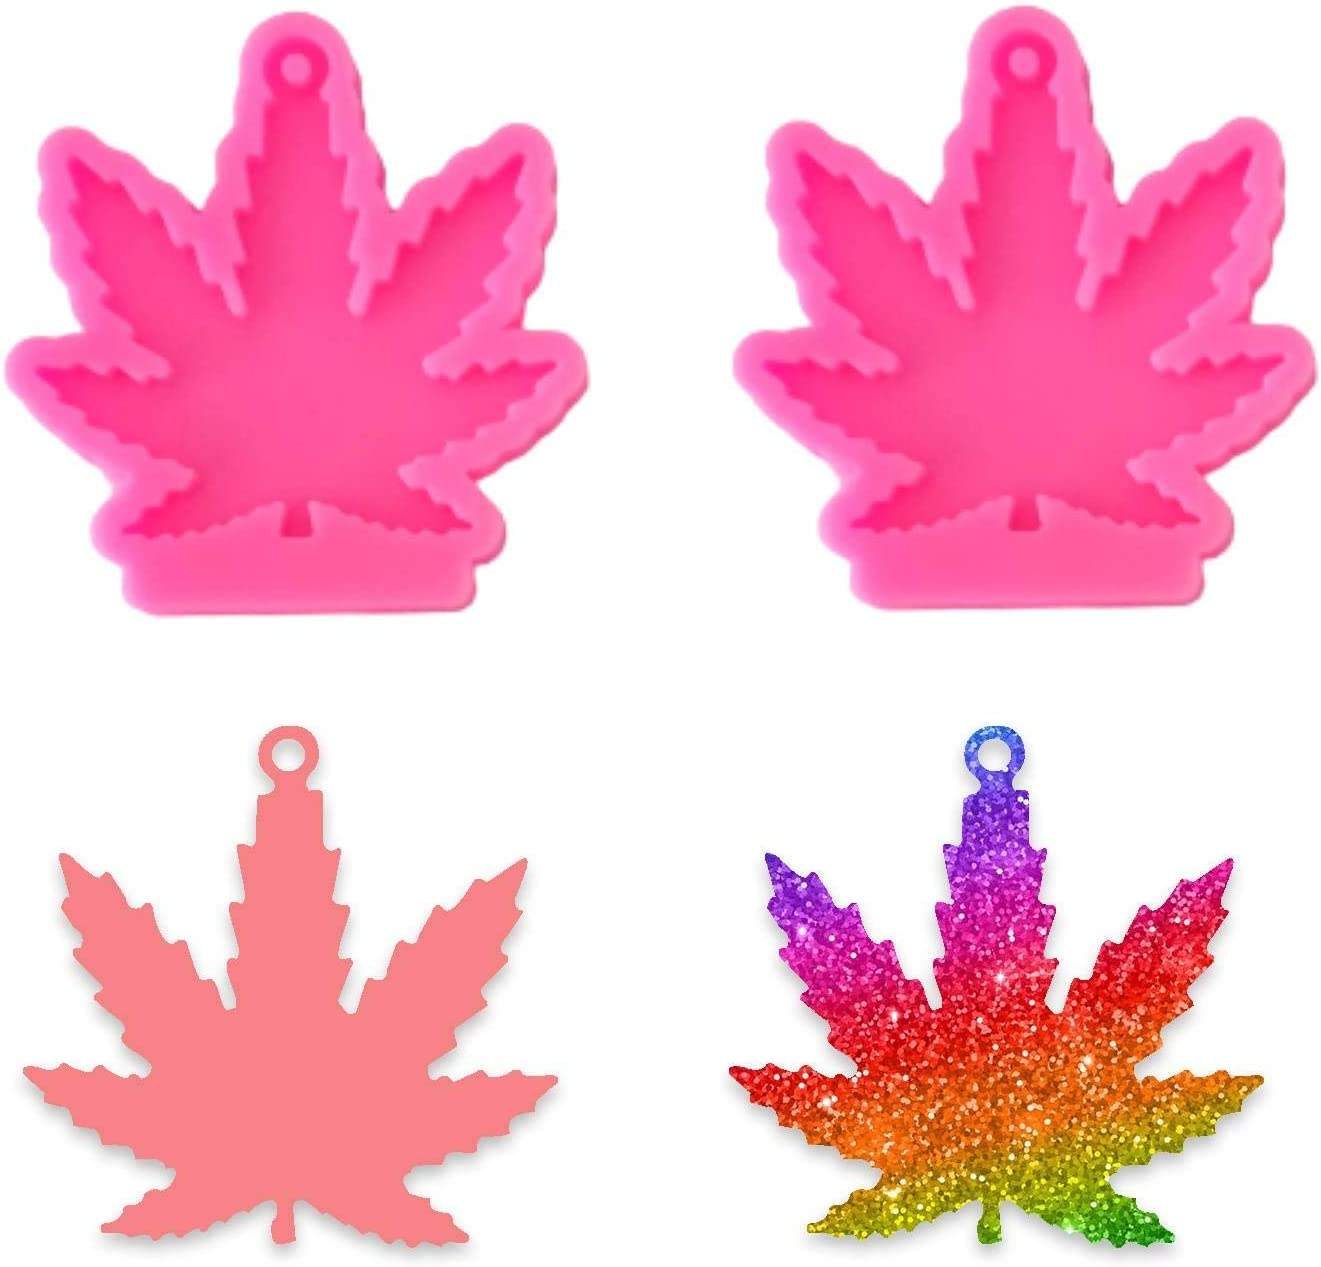 Maple Leaf Keychain Silicone Mold - 2 Pieces Leaves Shaped Handmade Keychain Silicone Mold with Hole for DIY Cupcake Decoration Candy Fondant Pudding Desserts Crystal Gum Paste Soap Mould, Pink